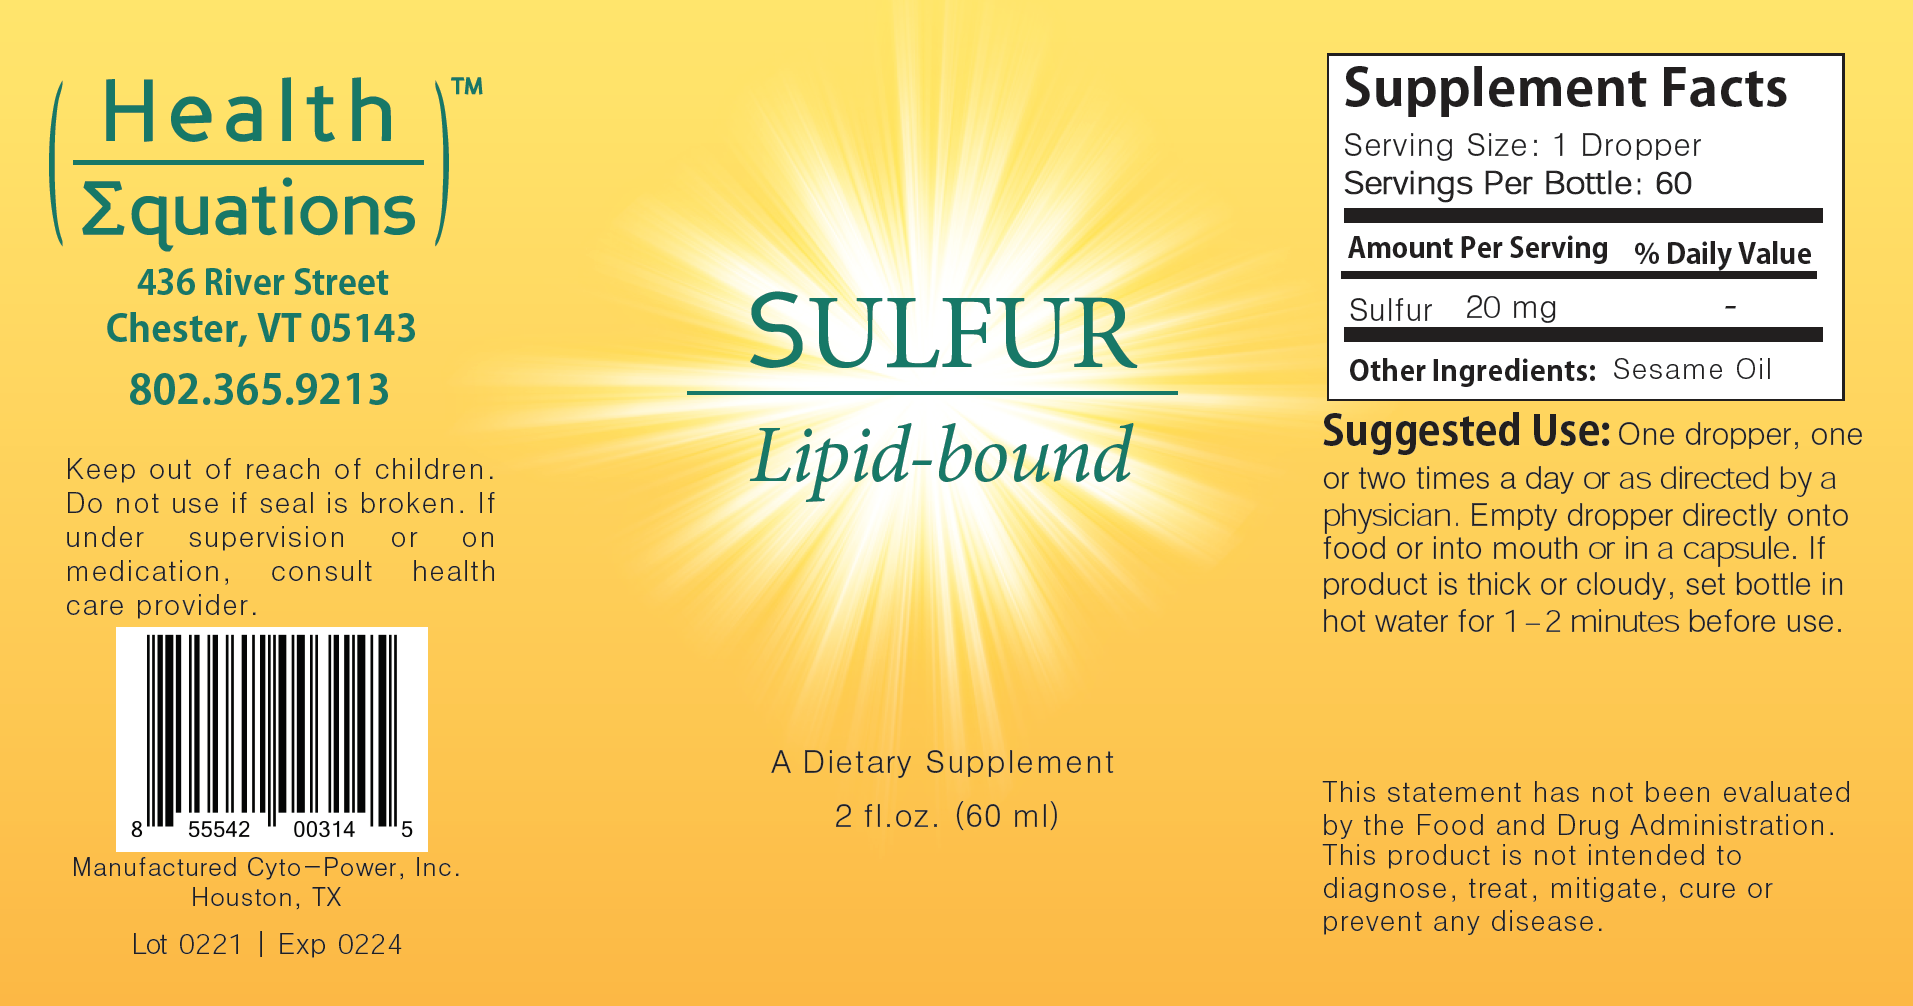 Lb Sulfur label by Health Equations